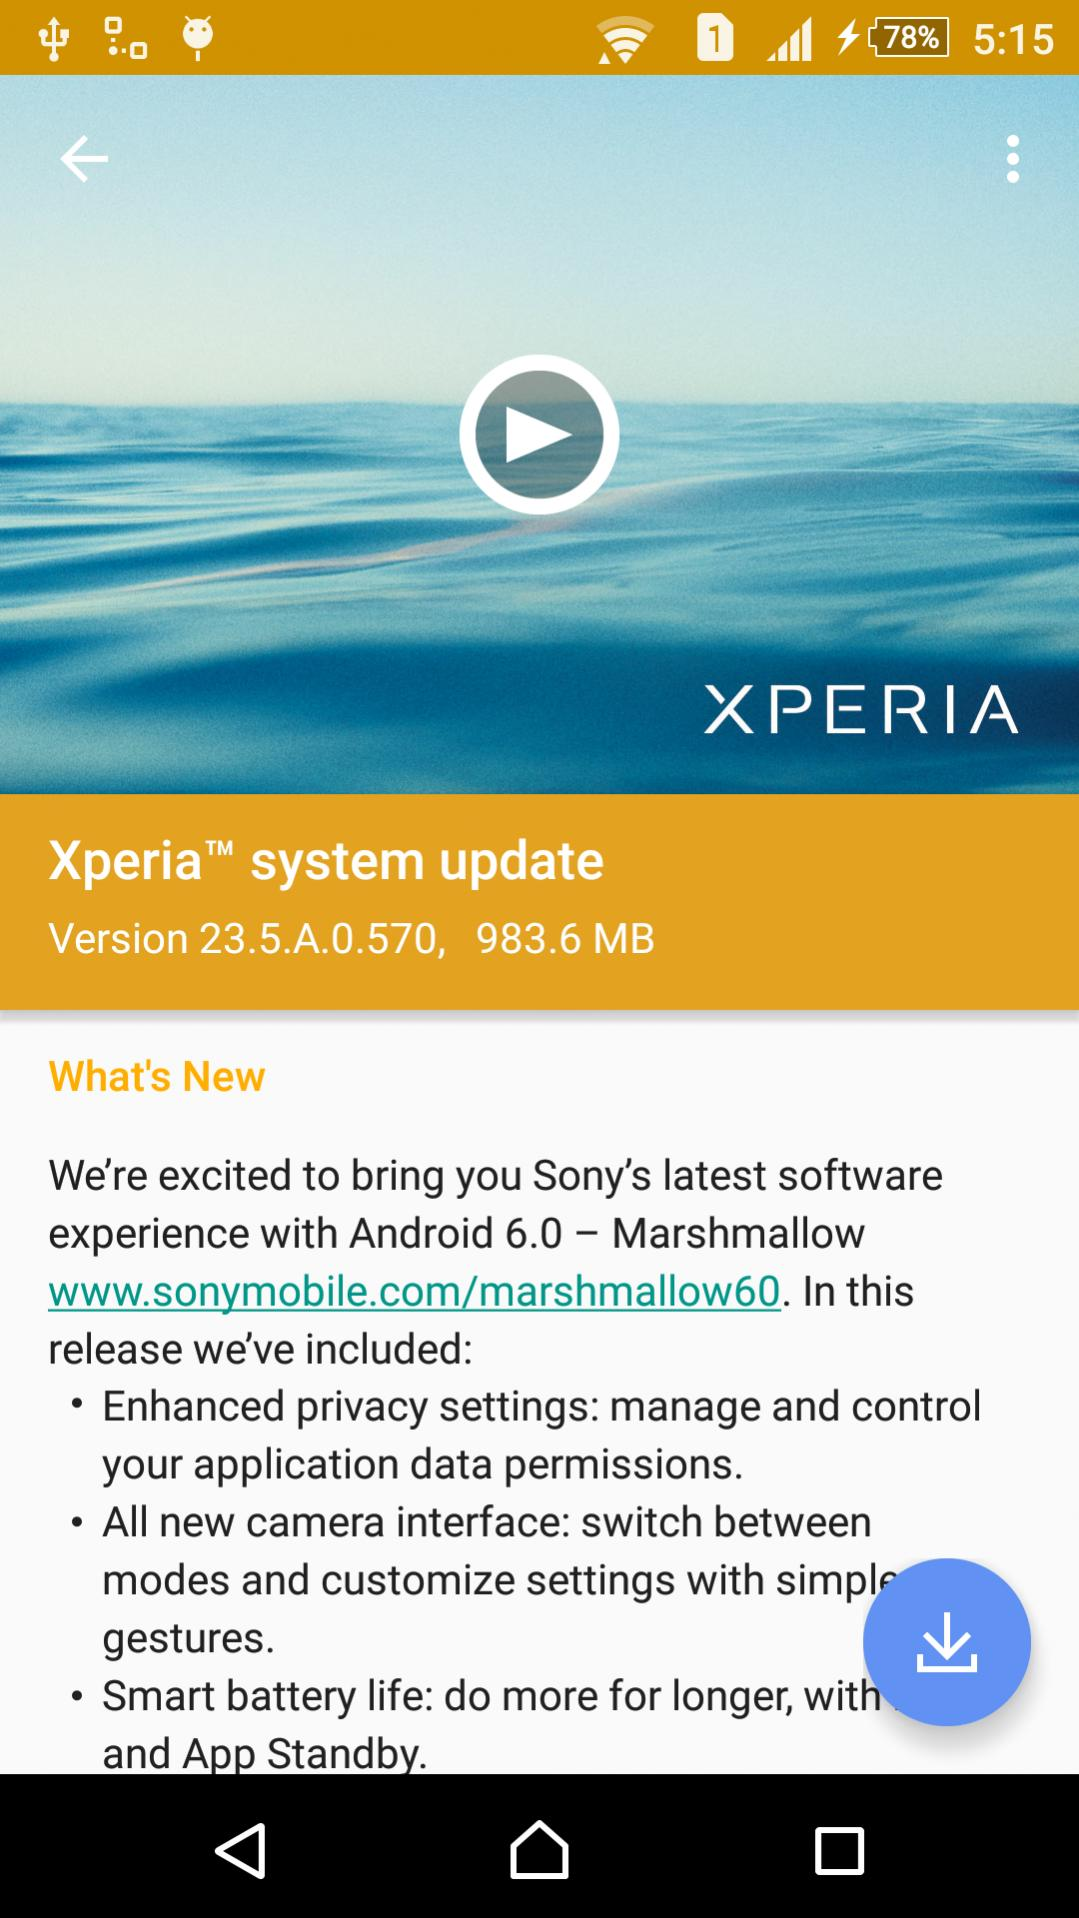 23.5.A.0.570 firmware update for Xperia Z3 Dual